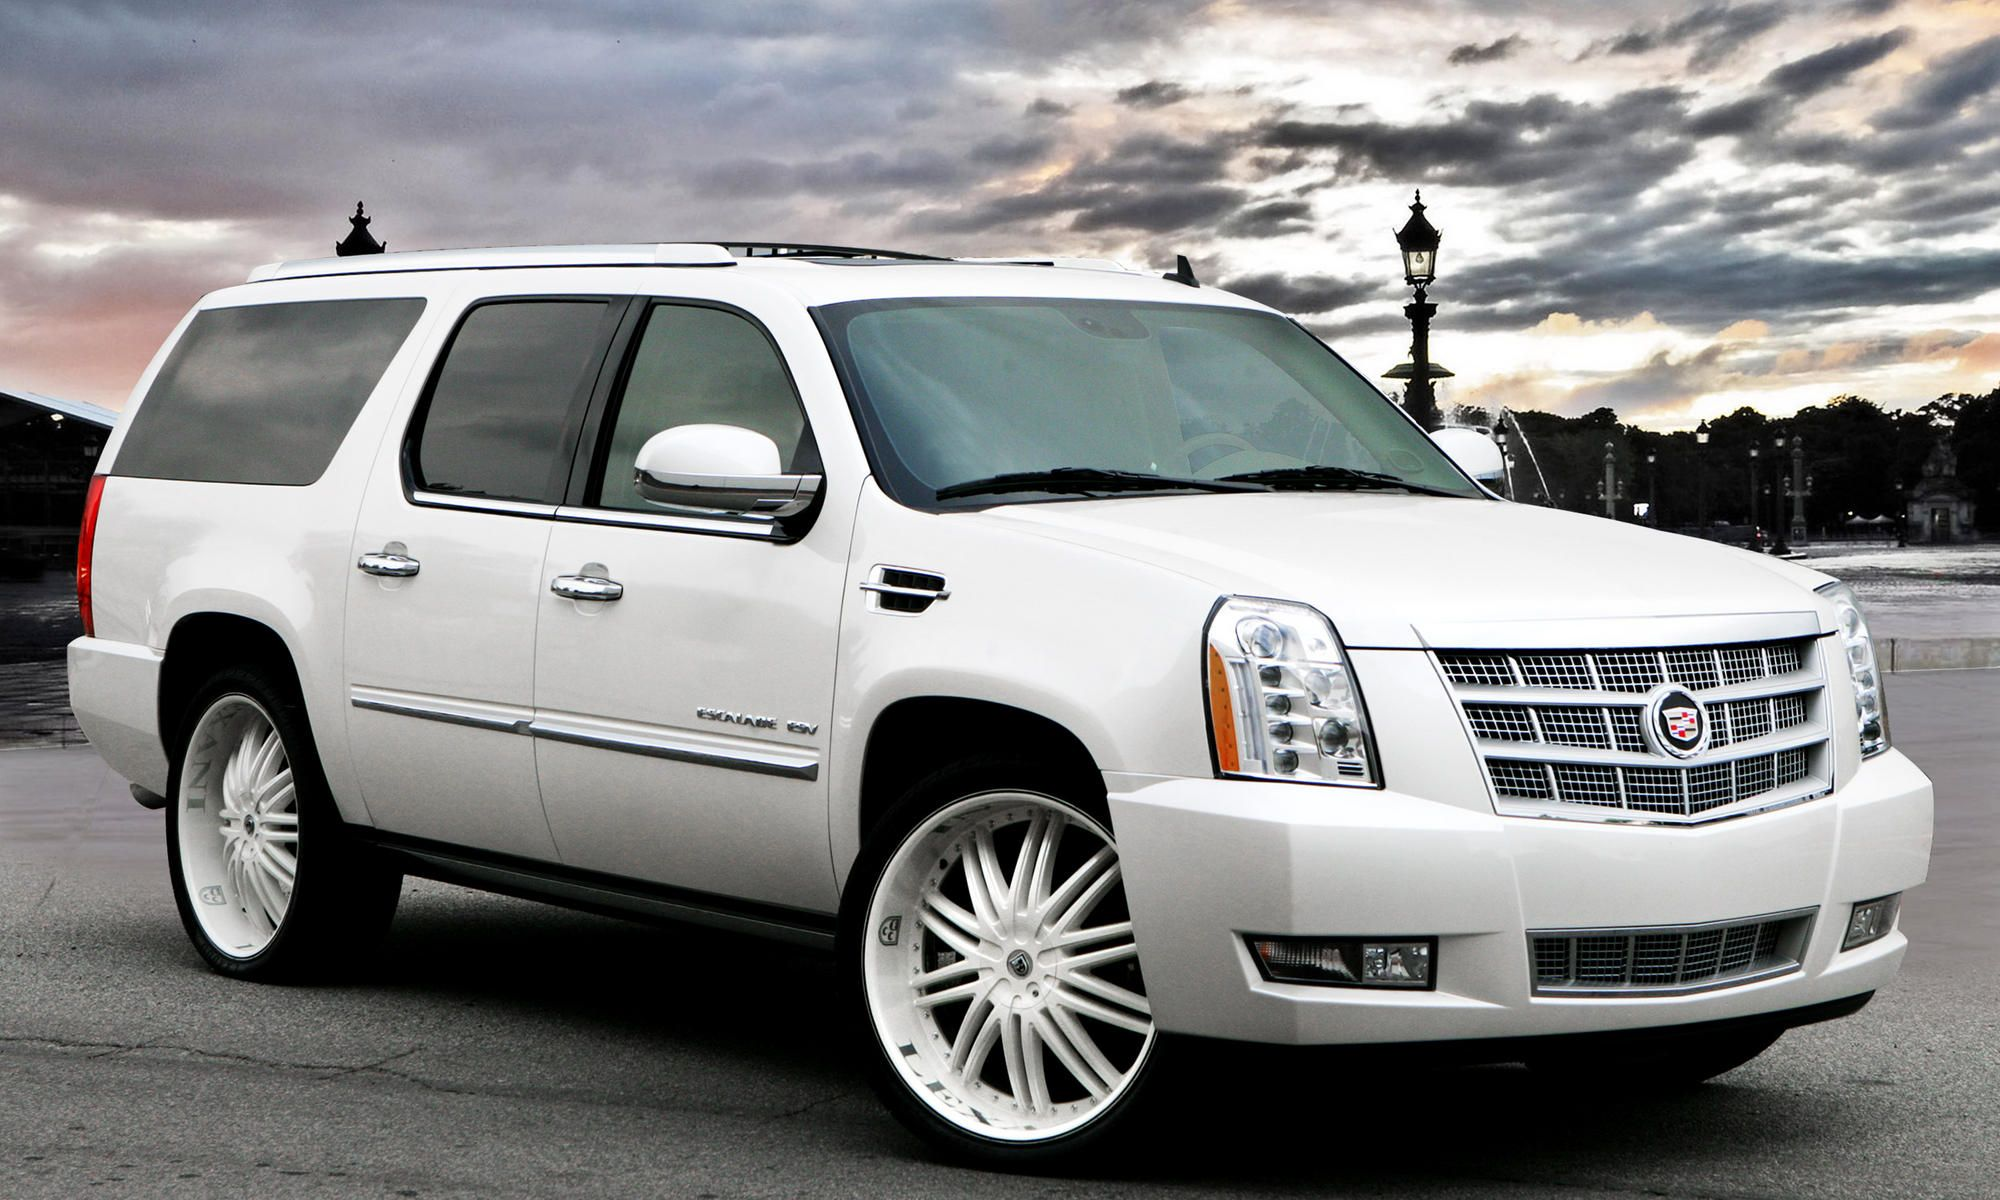 hight resolution of lexani wheels the leader in custom luxury wheels 2011 white cadillac escalade with custom white lx 10 wheels